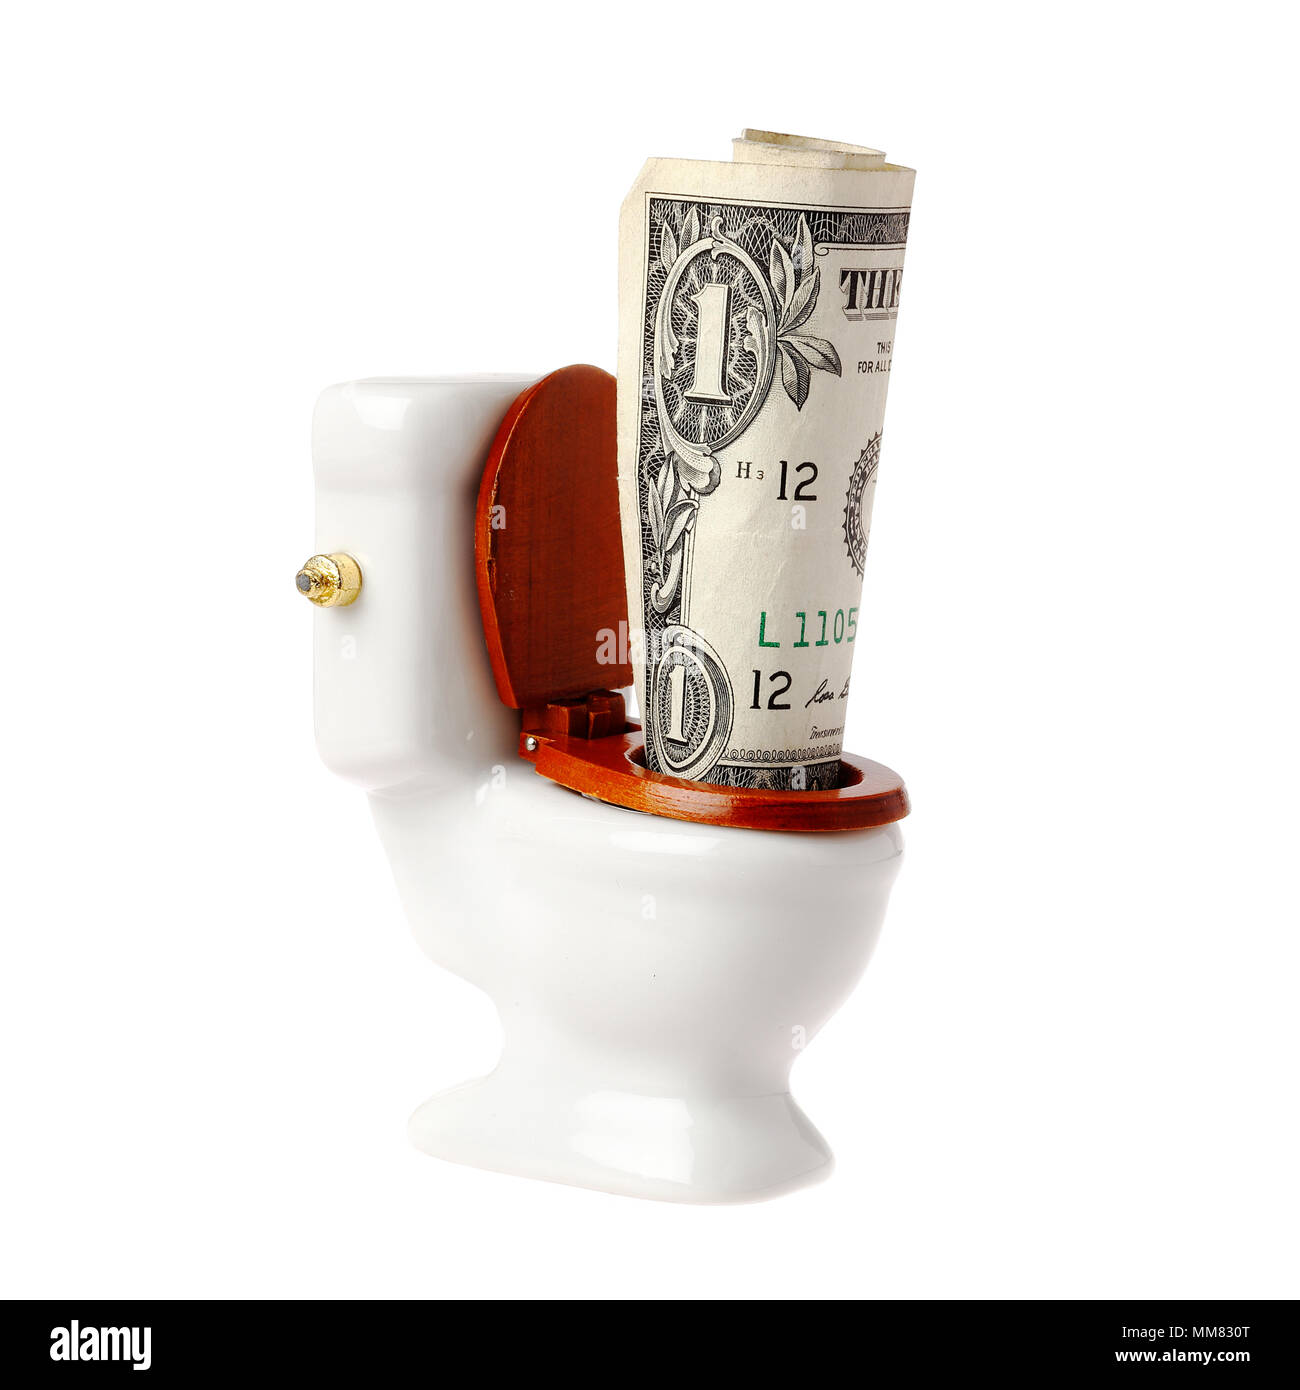 One US dollar banknote in a miniature toilet, isolated on white background. Stock Photo